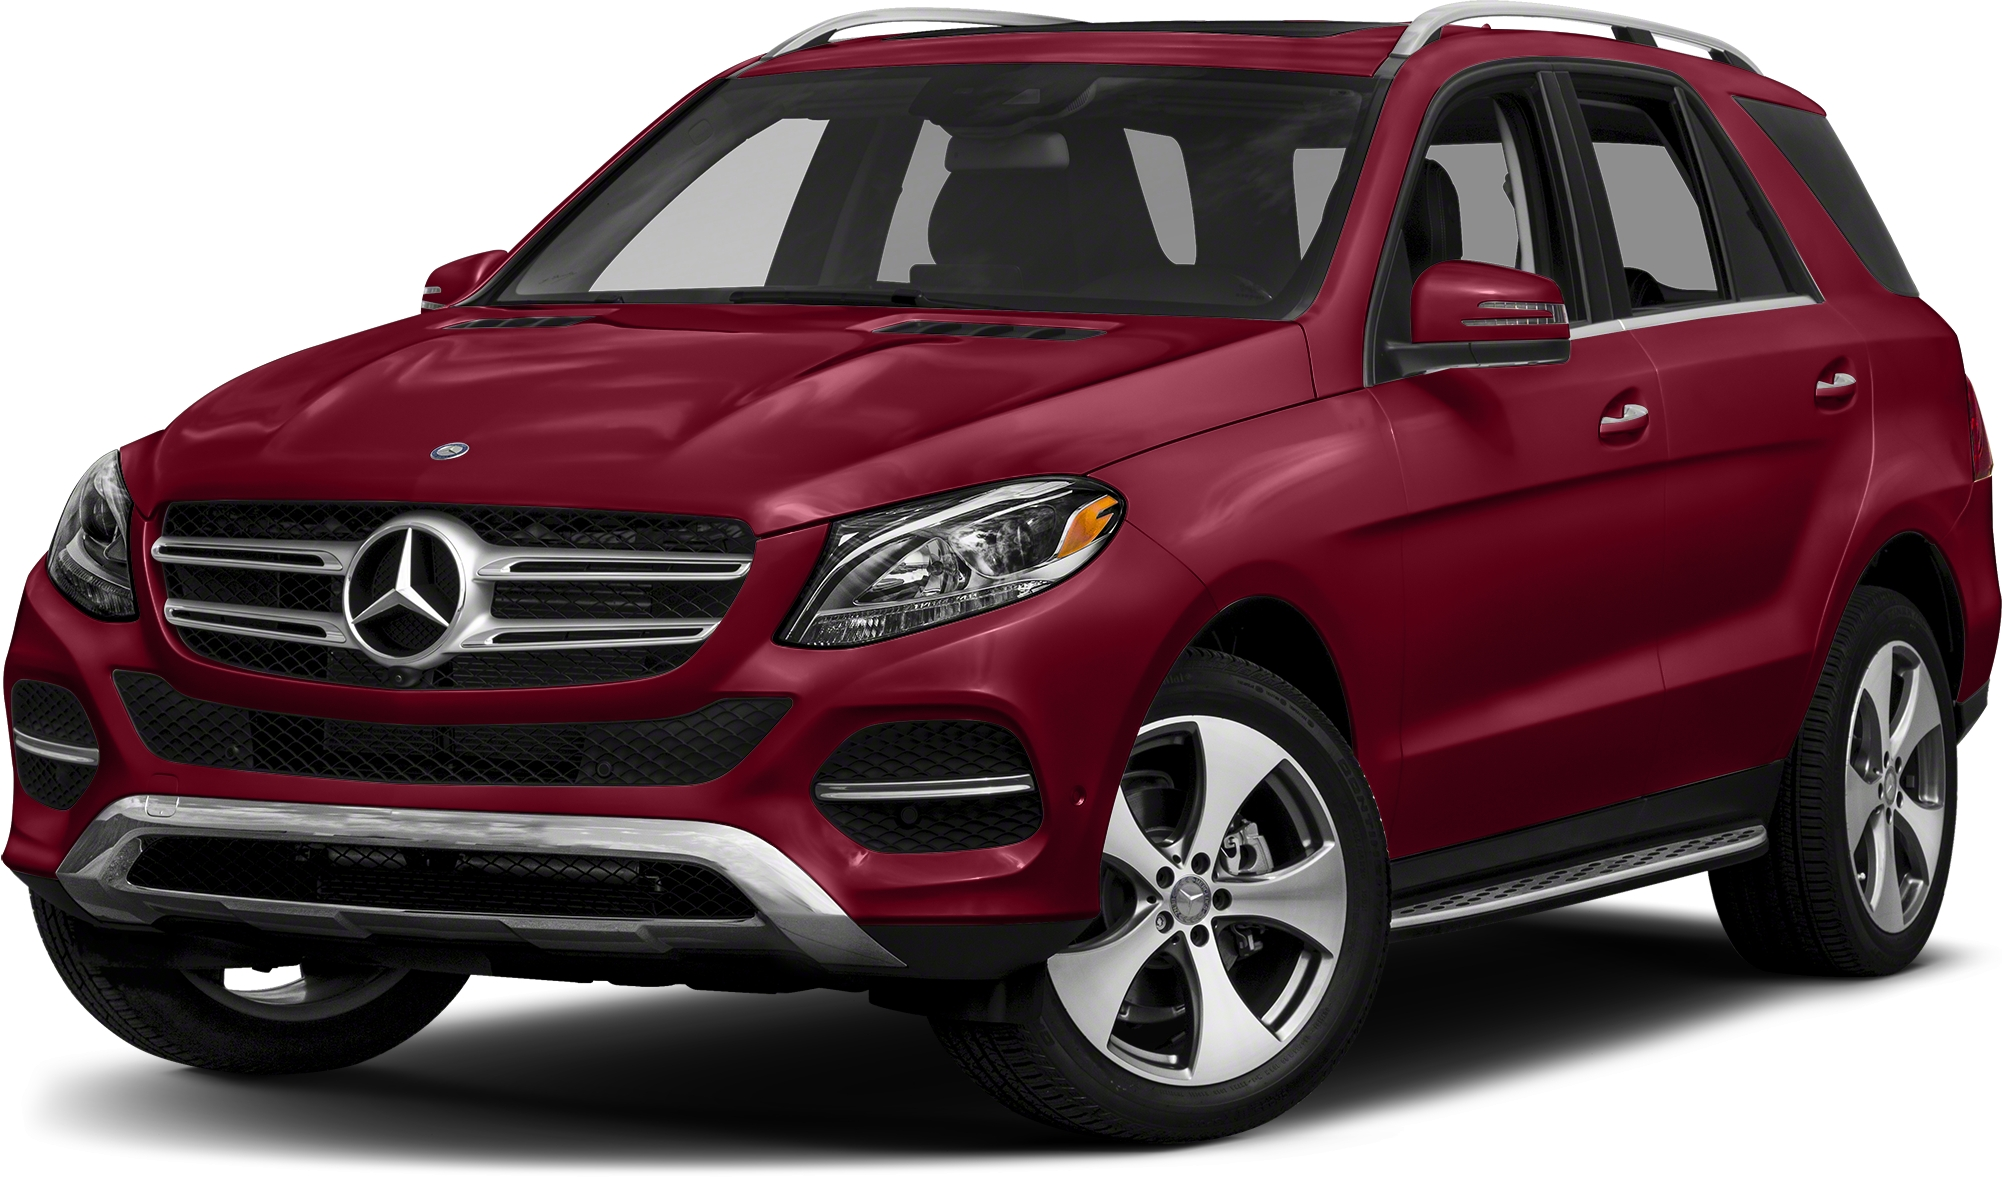 2018 mercedes benz gle 350 4matic suv 23934640 for sale price purchase lease near me. Black Bedroom Furniture Sets. Home Design Ideas